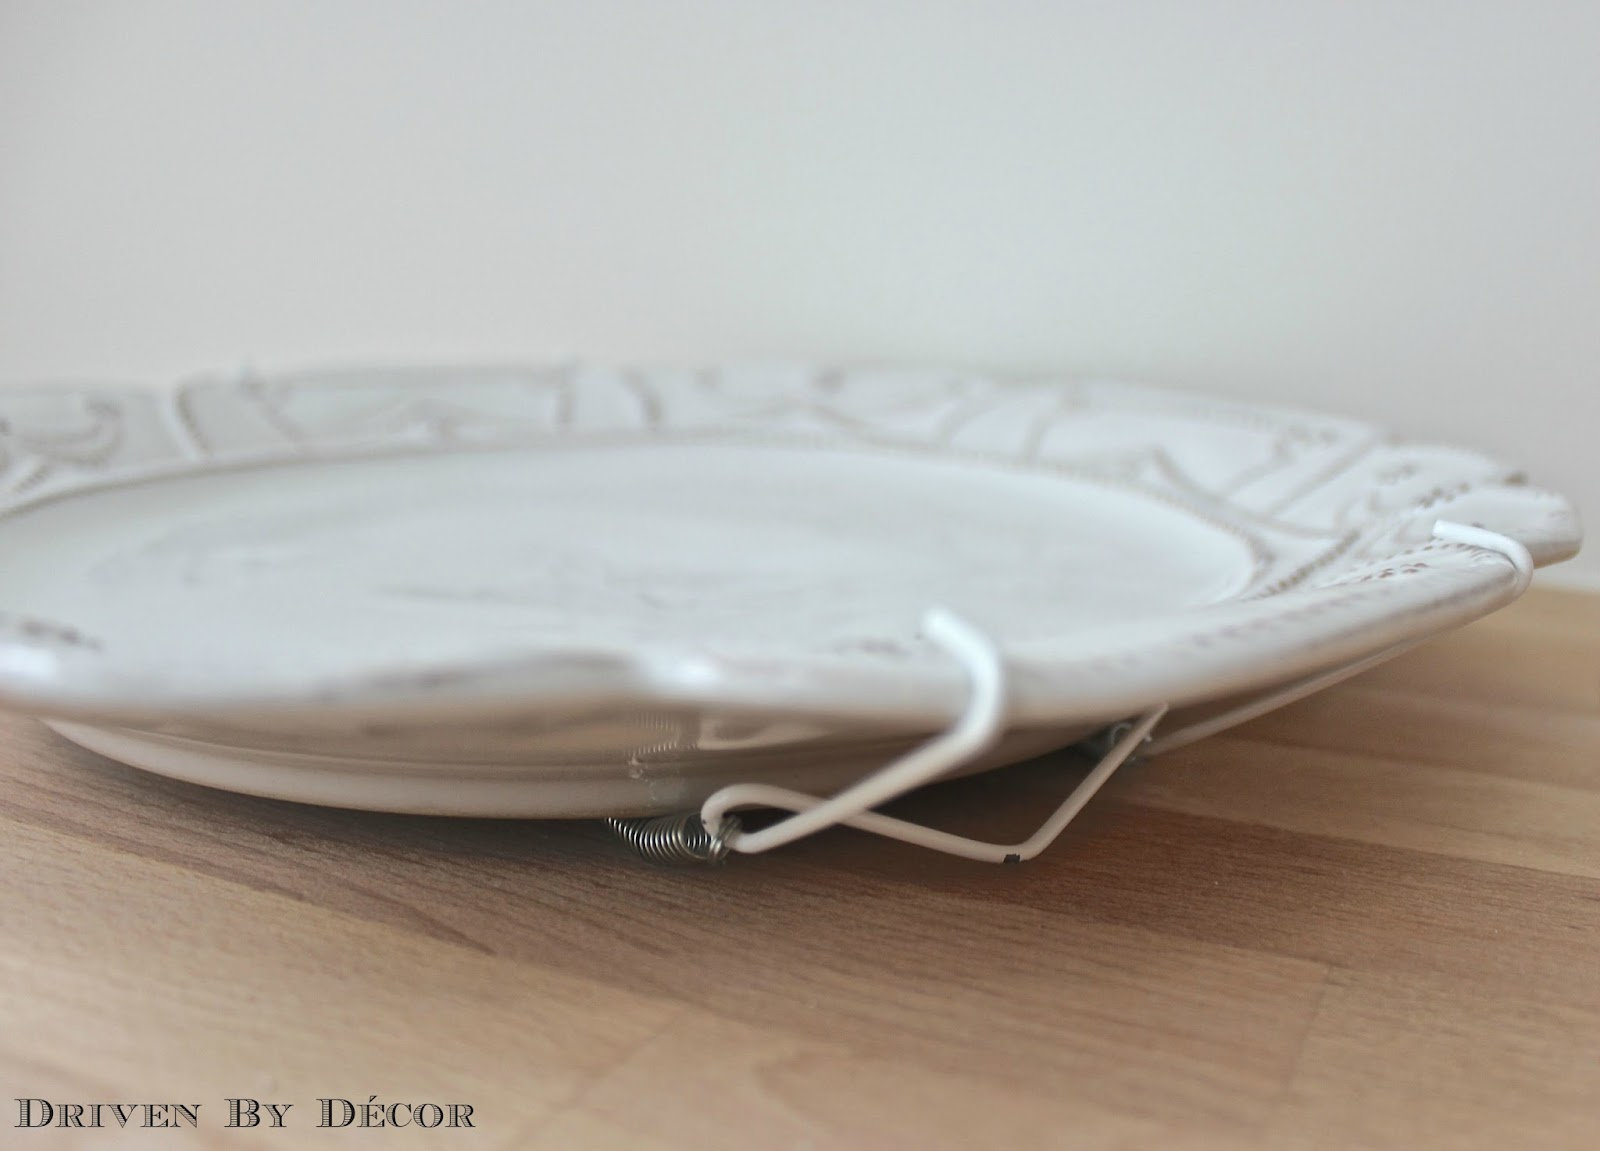 Once all of your plates have hangers it\u0027s time to get them up on the wall! I used OOK picture hooks \u2013 hook your OOK hook onto the wire hanger that is ... : hangers for plates - pezcame.com